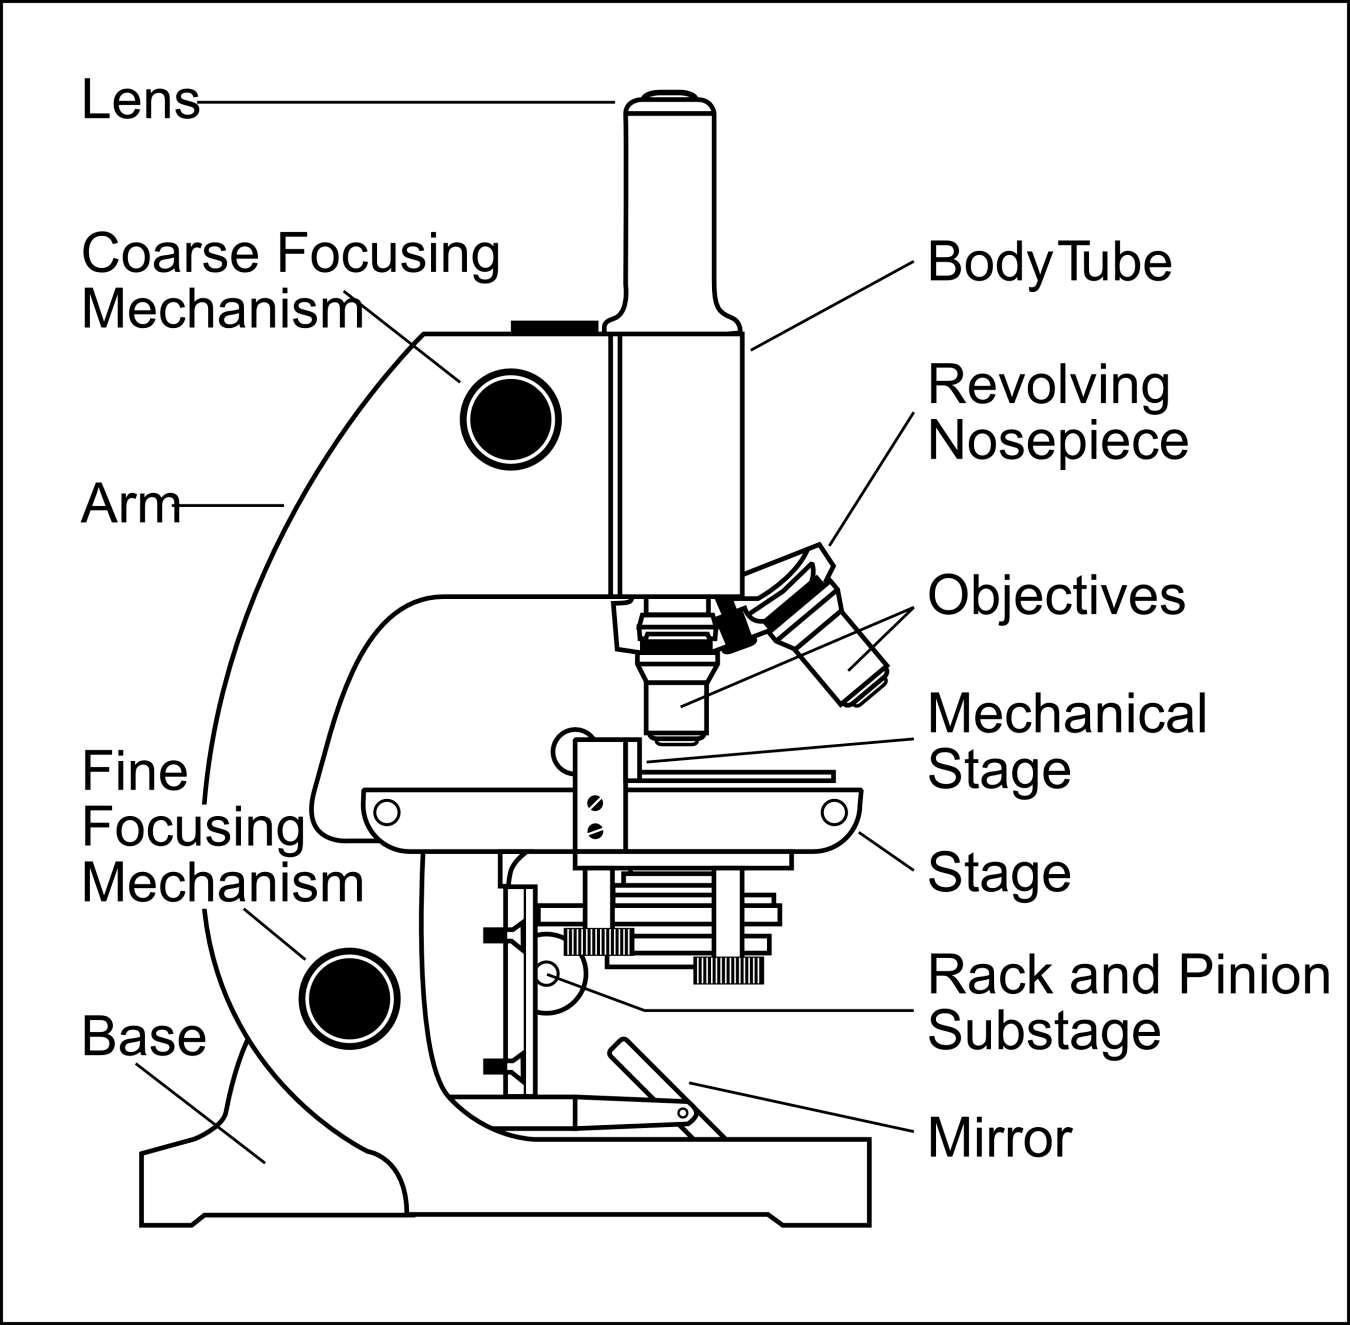 Simple Microscope Drawing At Getdrawings